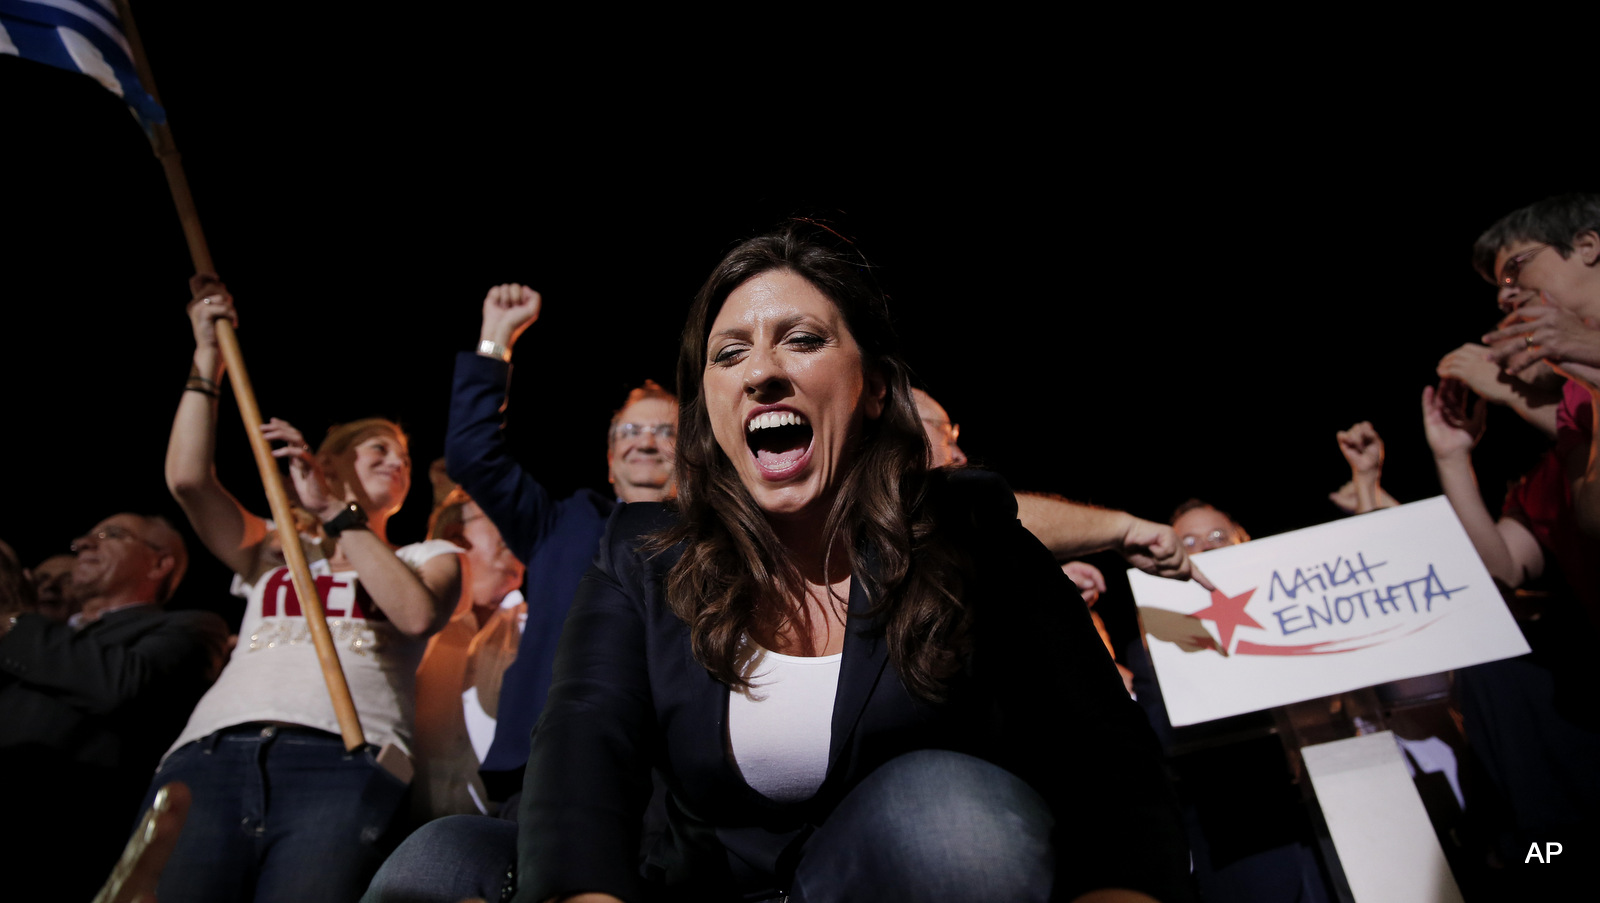 Zoe Konstantopoulou acknowledges the supporters during a pre-election rally, in central Athens, Tuesday, Sept. 15, 2015.